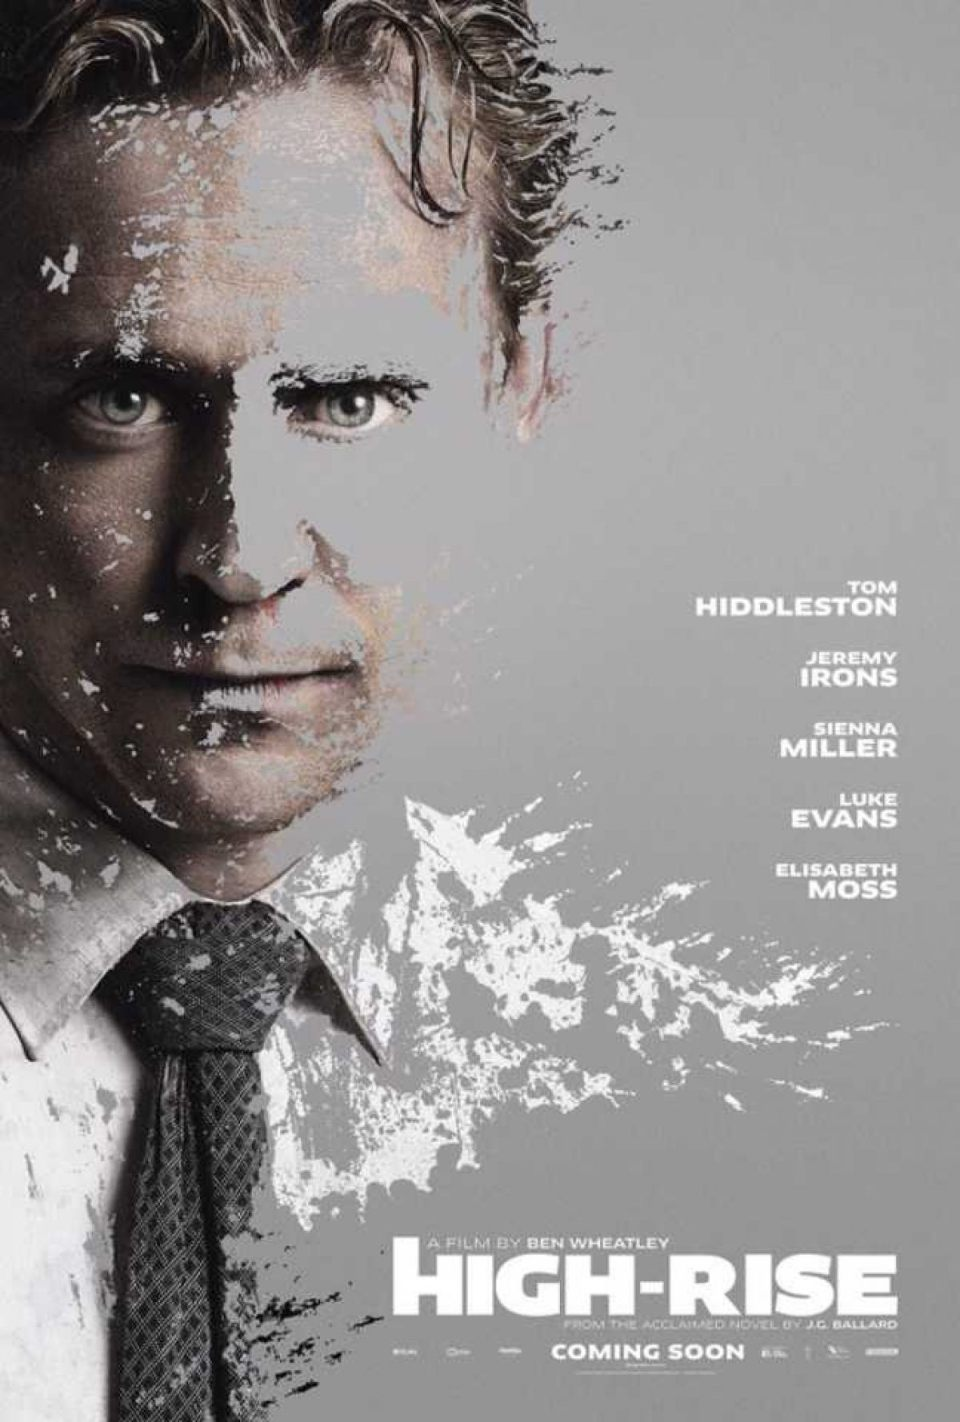 high rise paint poster.jpg?zoom=1 - High-Rise (2016)